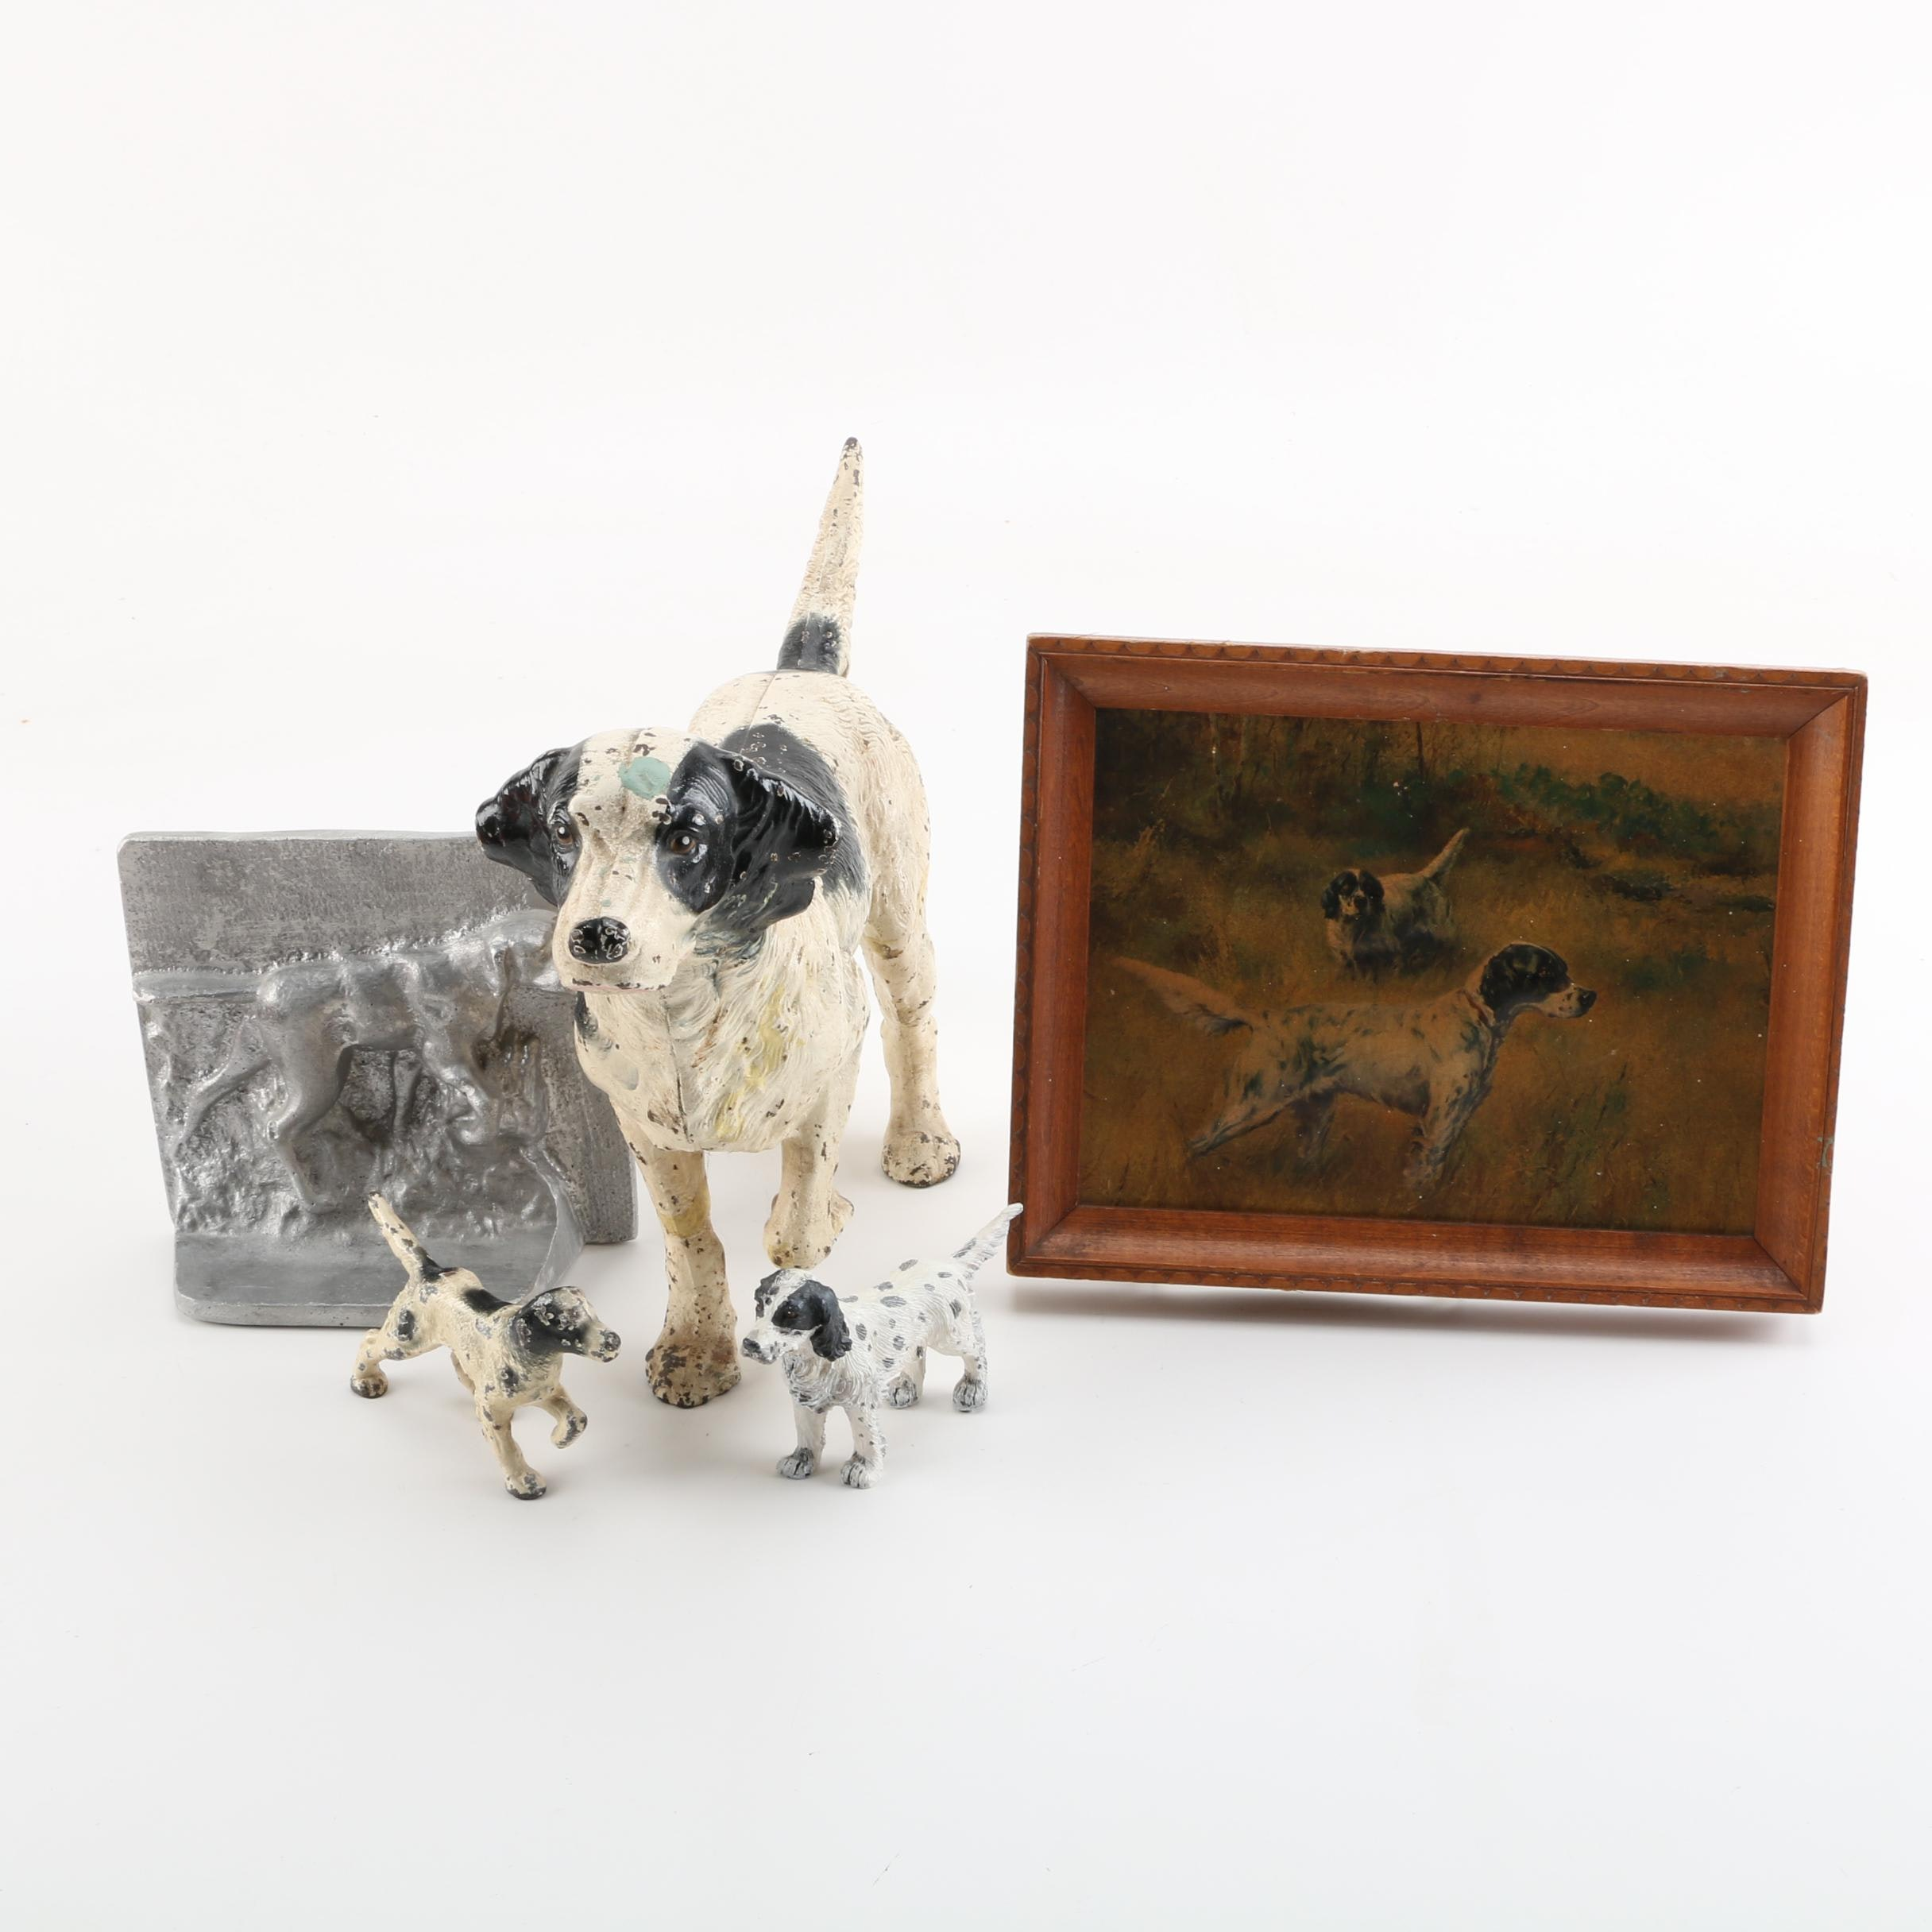 Vintage Cast Iron English Setter Door Stop, Figurines, Bookend, and Wall Art